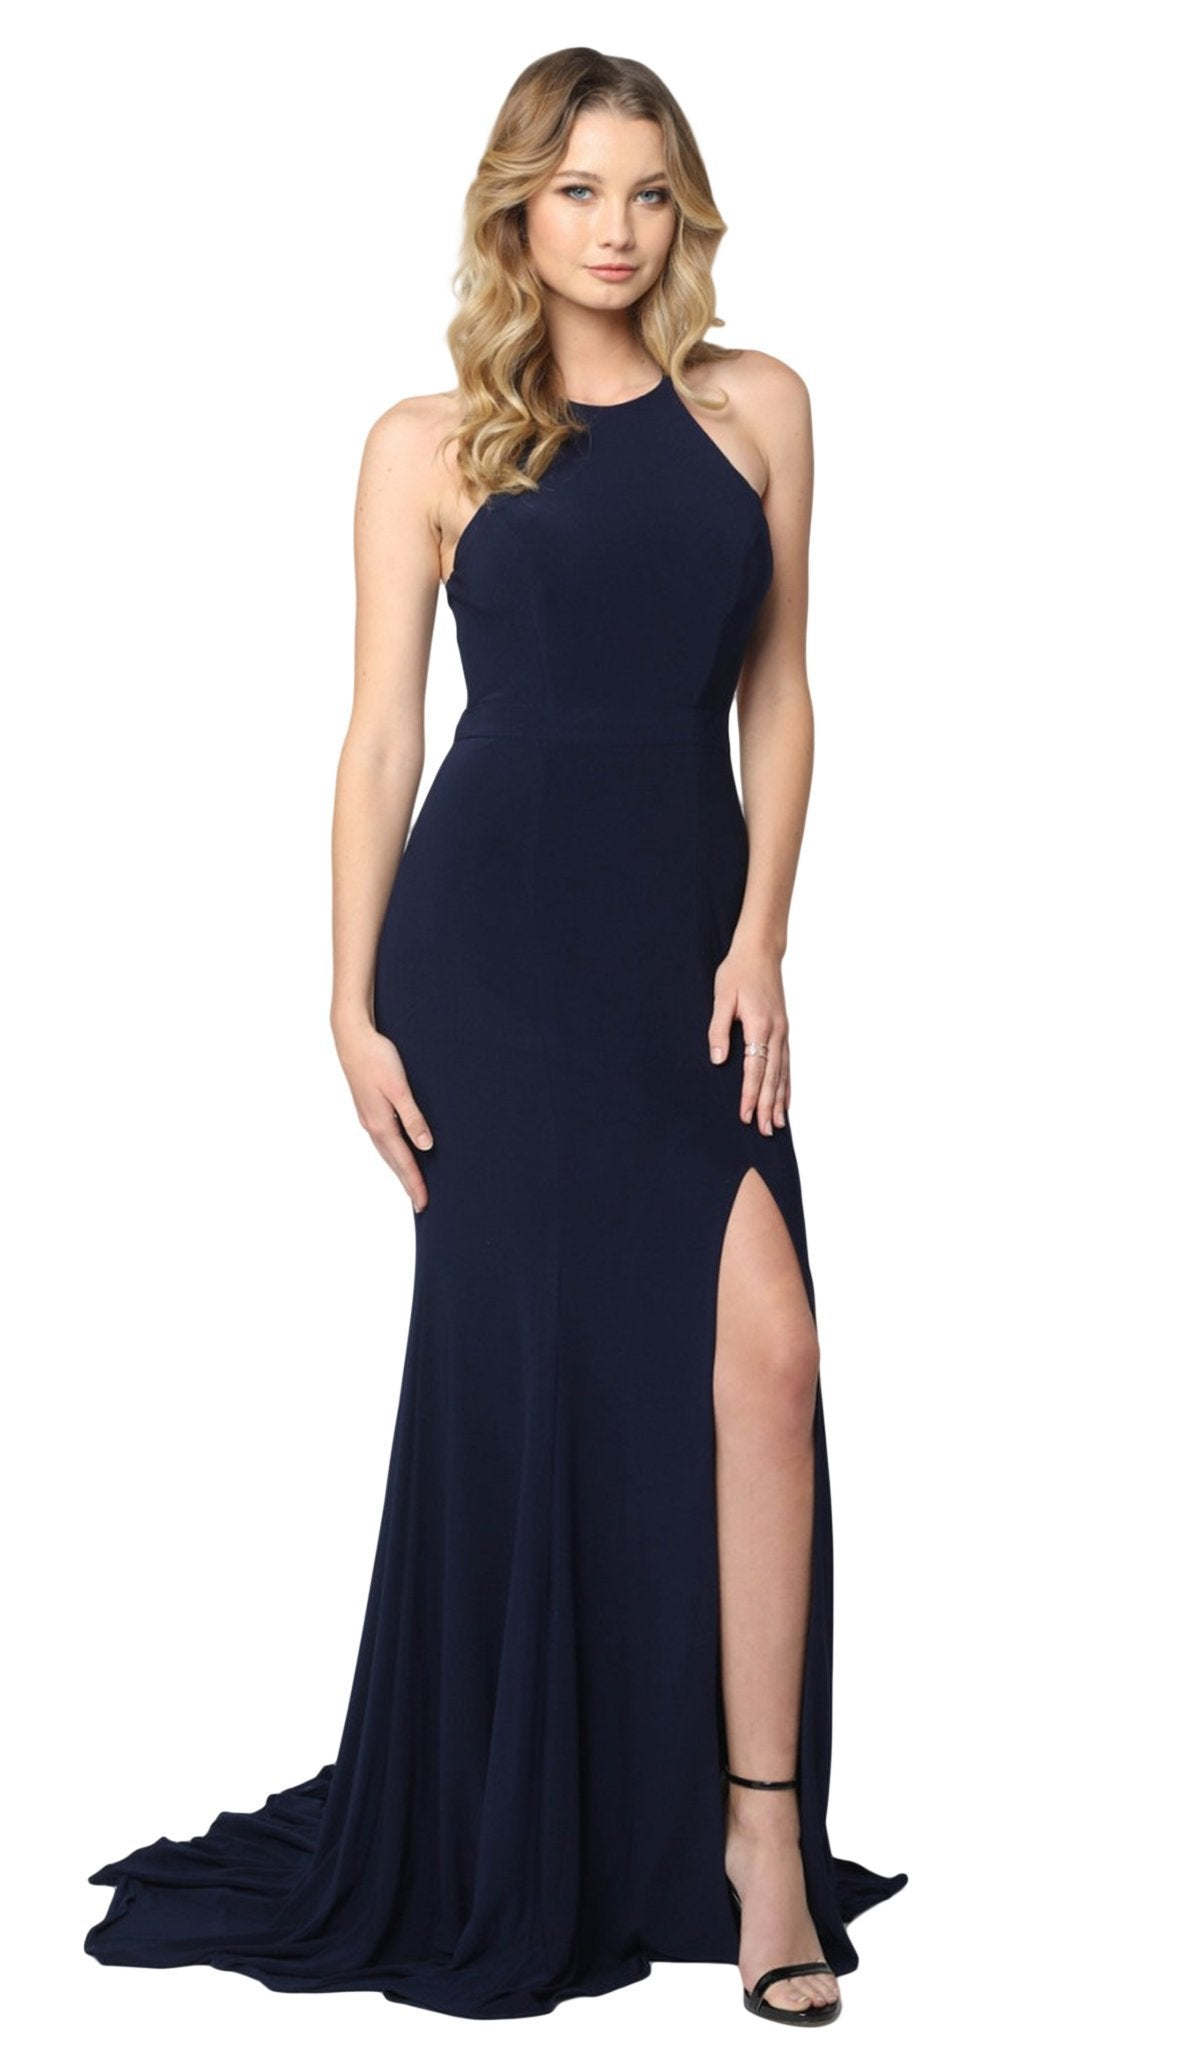 Nox Anabel - Q131 High Halter Georgette Mermaid Gown with Slit In Blue